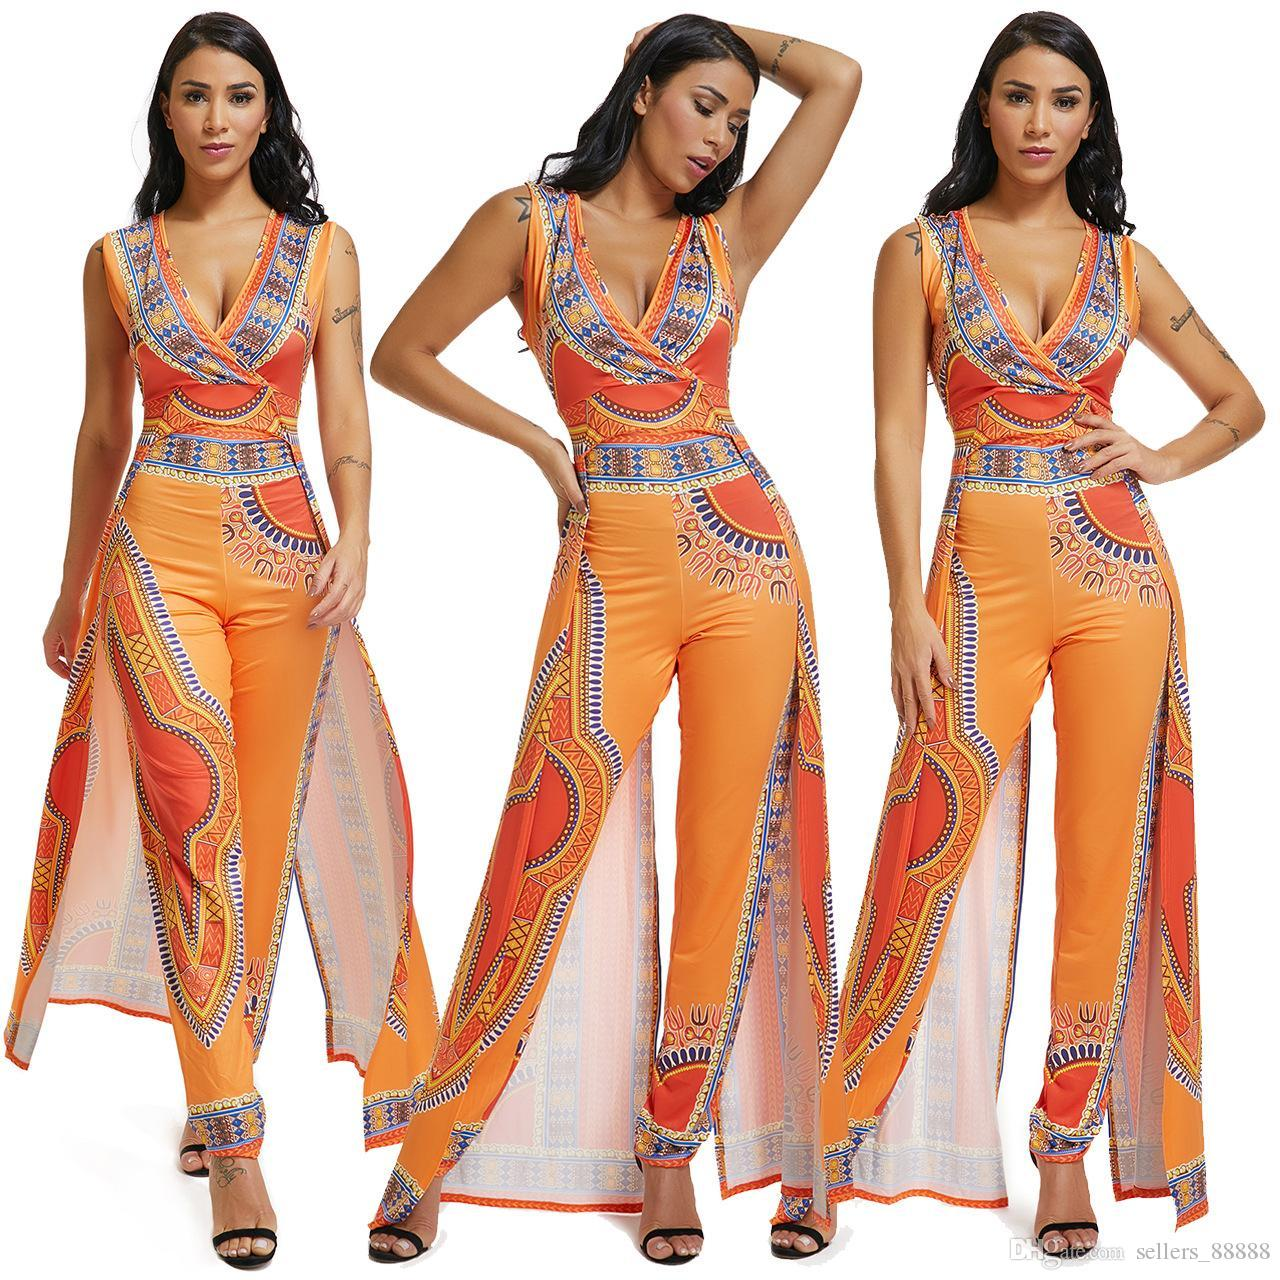 363834255cc 2019 Africa Ethnic Print Orange Women Jumpsuit Sexy Wrap V Neck Sleeveless  Indie Folk Romper Fashion Culotte Overalls New Style From Sellers 88888